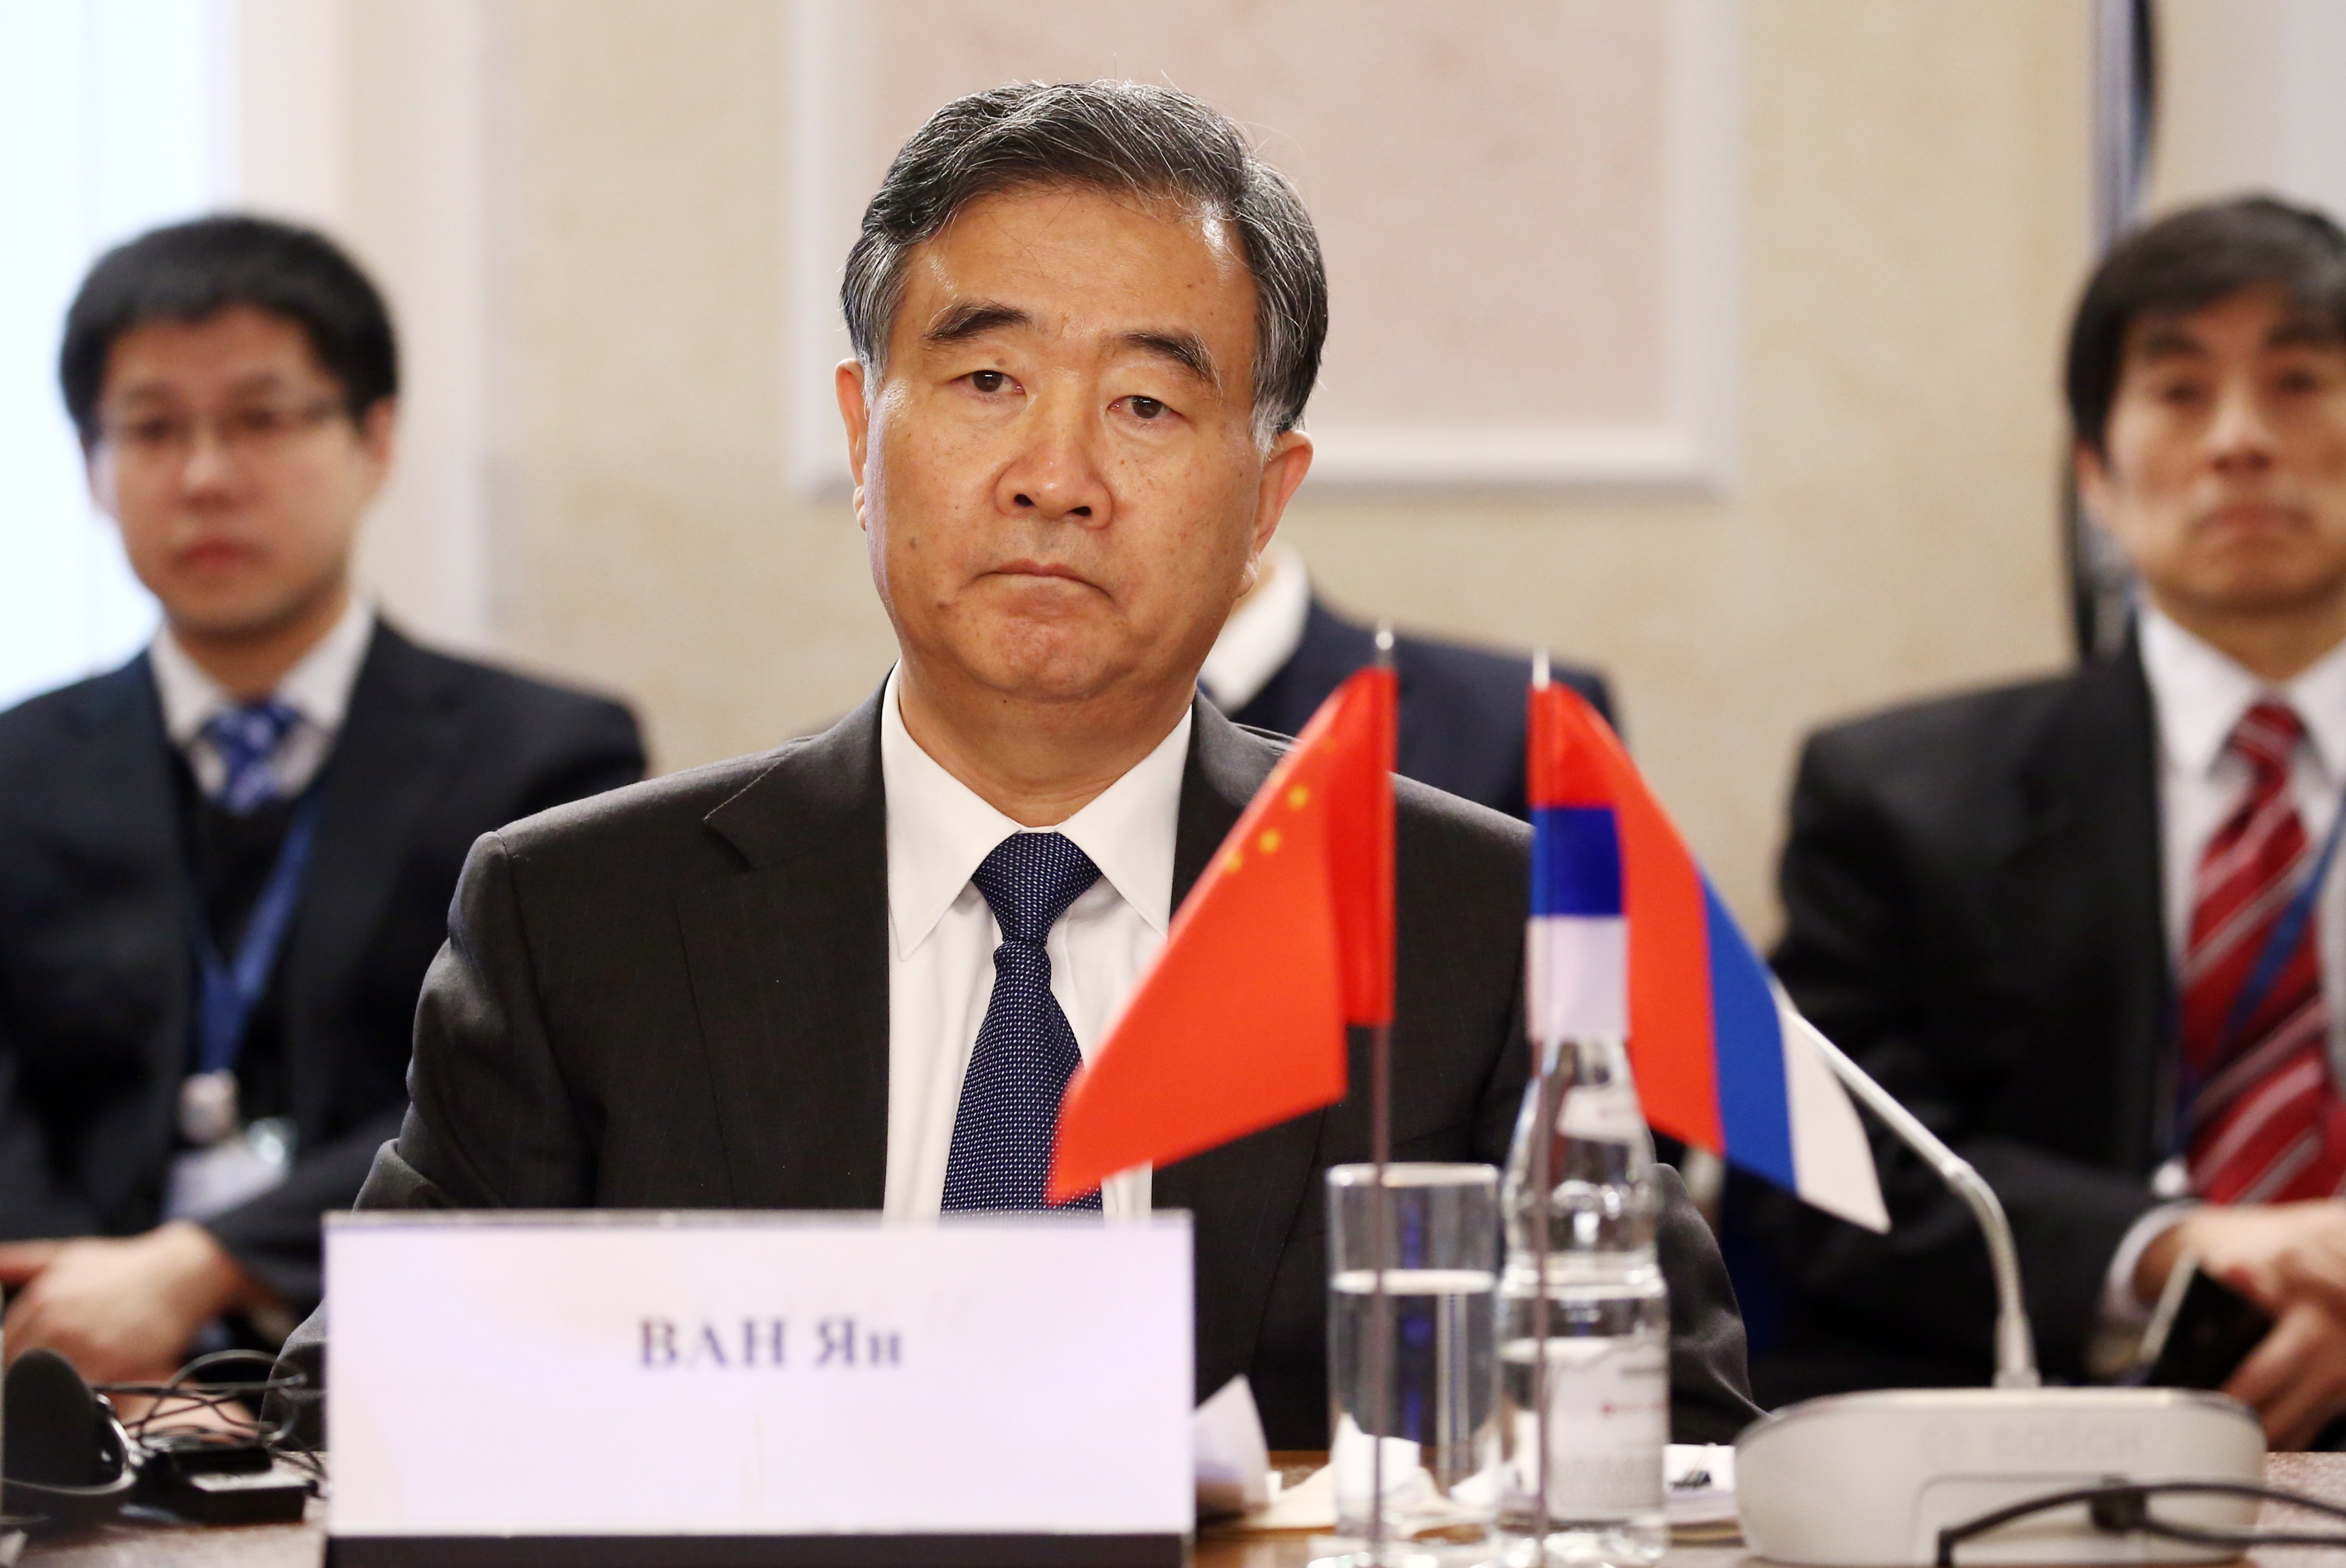 China's Vice Premier Wang Yang looks on during a meeting with Russia's Deputy Prime Minister Dmitry Rogozin, both co-chairs of the Russian-Chinese Commission on Preparing Regular Meetings of Heads of Government, on the sidelines of the 2017 Arctic: Territory of Dialogue International Arctic Forum at the Lomonosov Northern (Arctic) Federal University in Arkhangelsk, Russia, March 29, 2017. (Alexander Ryumin / TASS Host Photo Agency via International Arctic Forum)